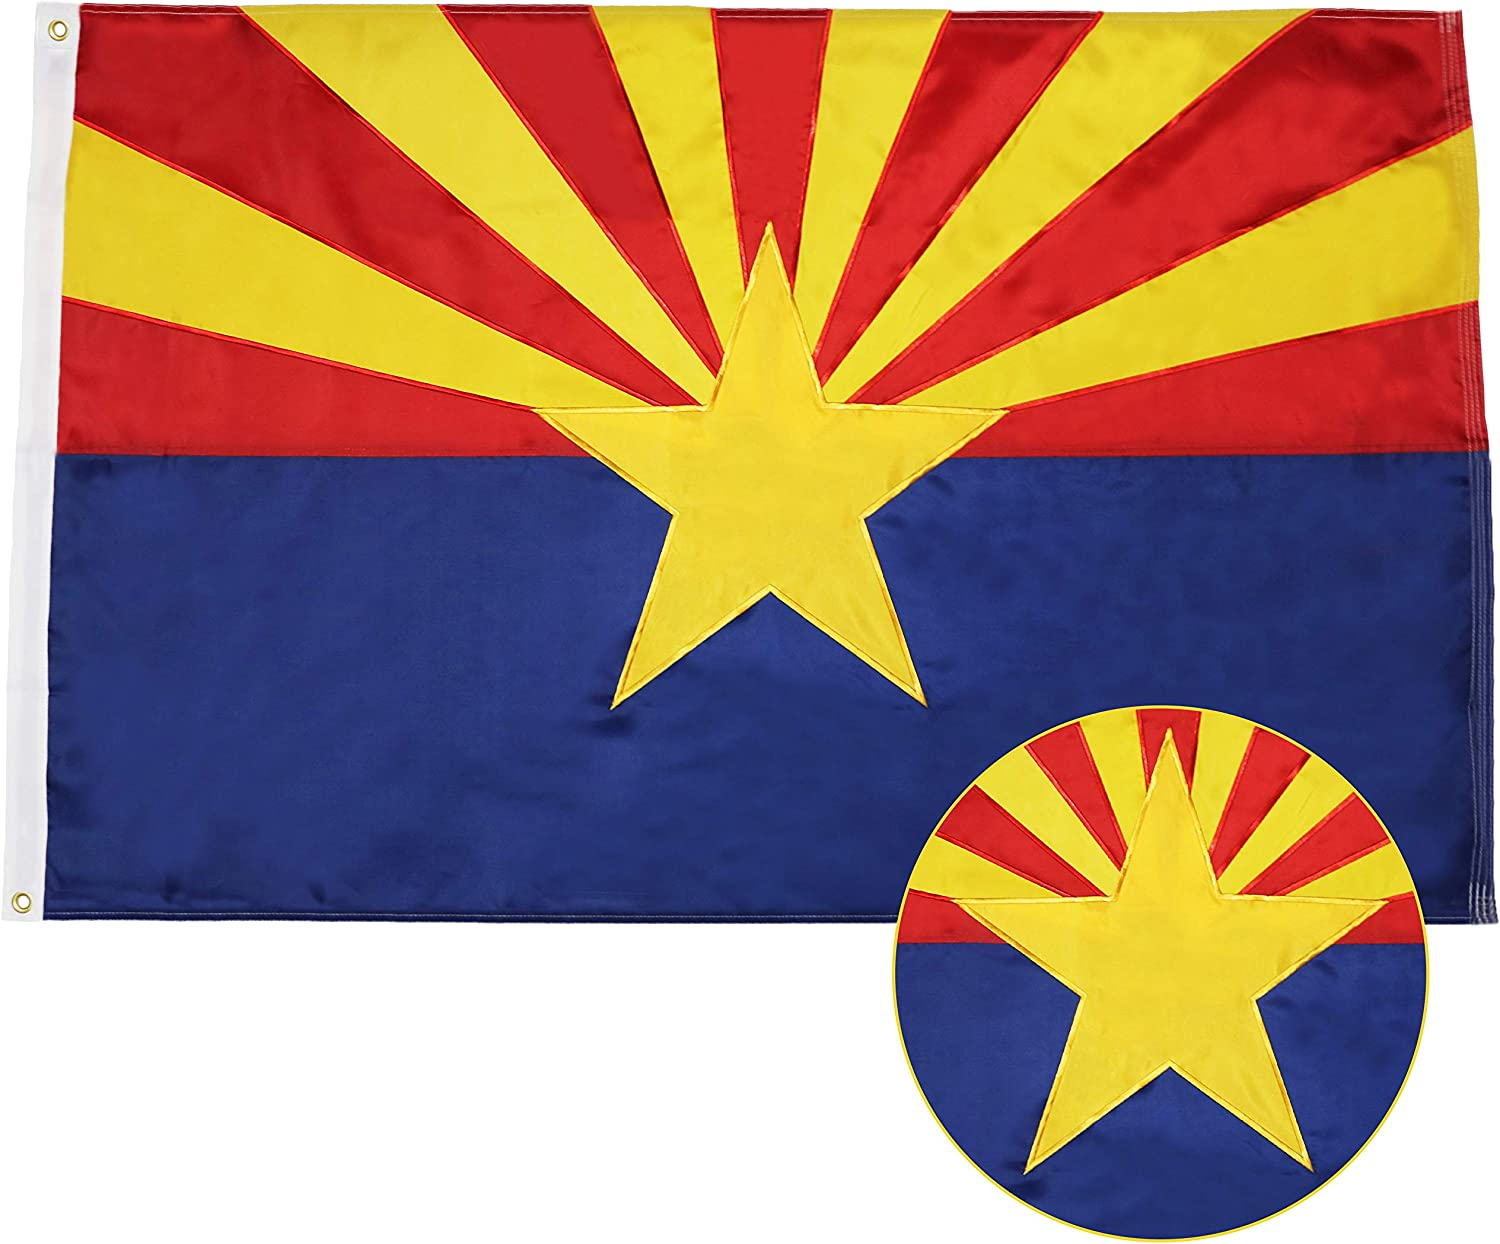 G128 - Arizona State Flag   3x5 feet   Double Sided Embroidered 210D - Indoor/Outdoor, Brass Grommets, Heavy Duty Polyester, 2-ply